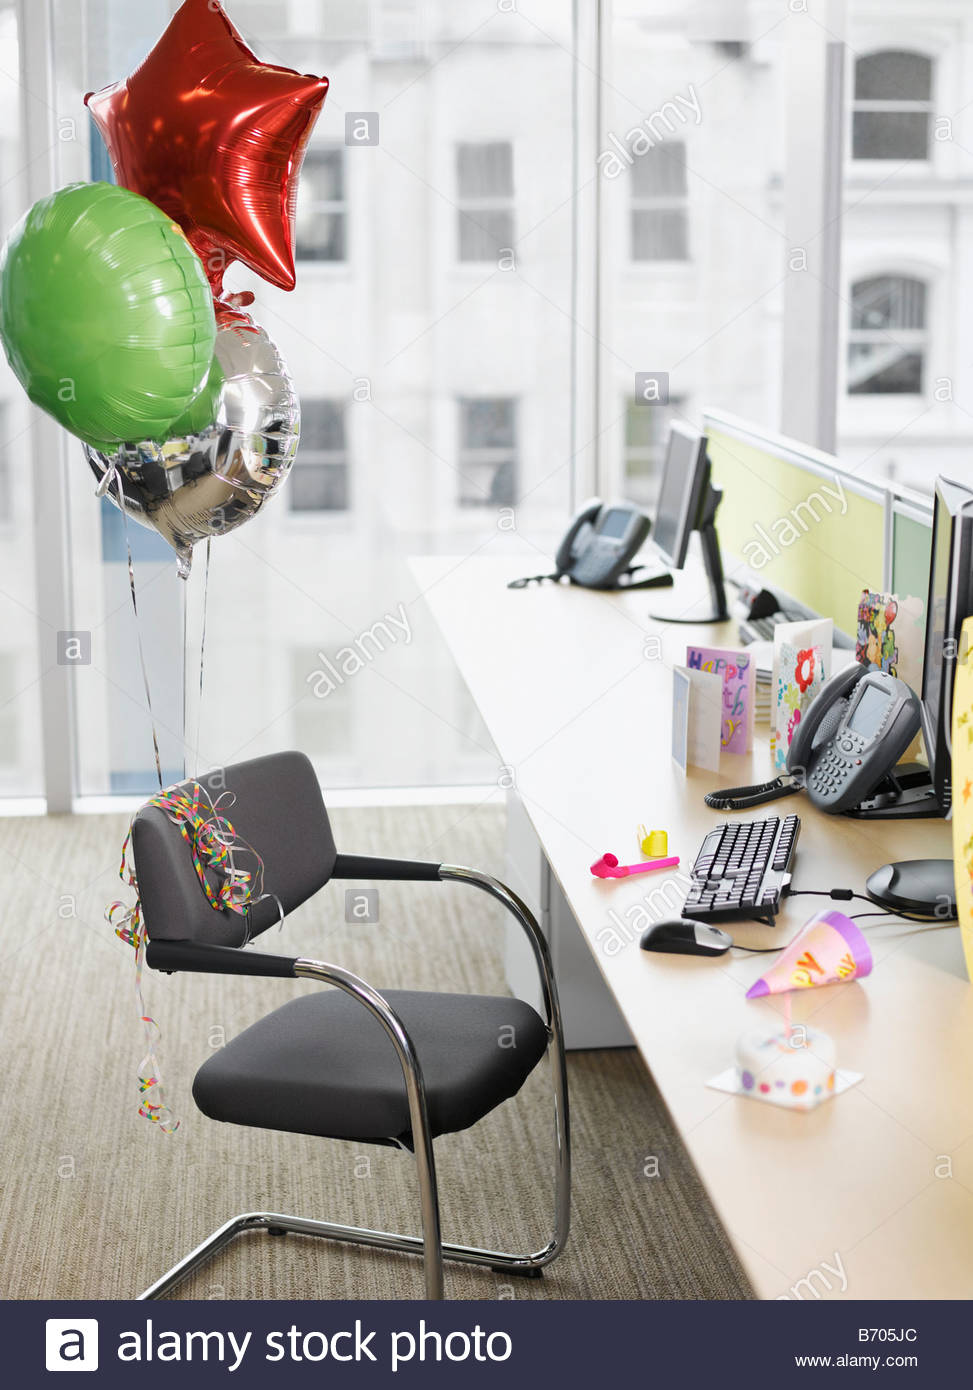 birthday balloons tied to office chair stock photo 21517396 alamy rh alamy com office chair ballymoney Balloon Chair Flight